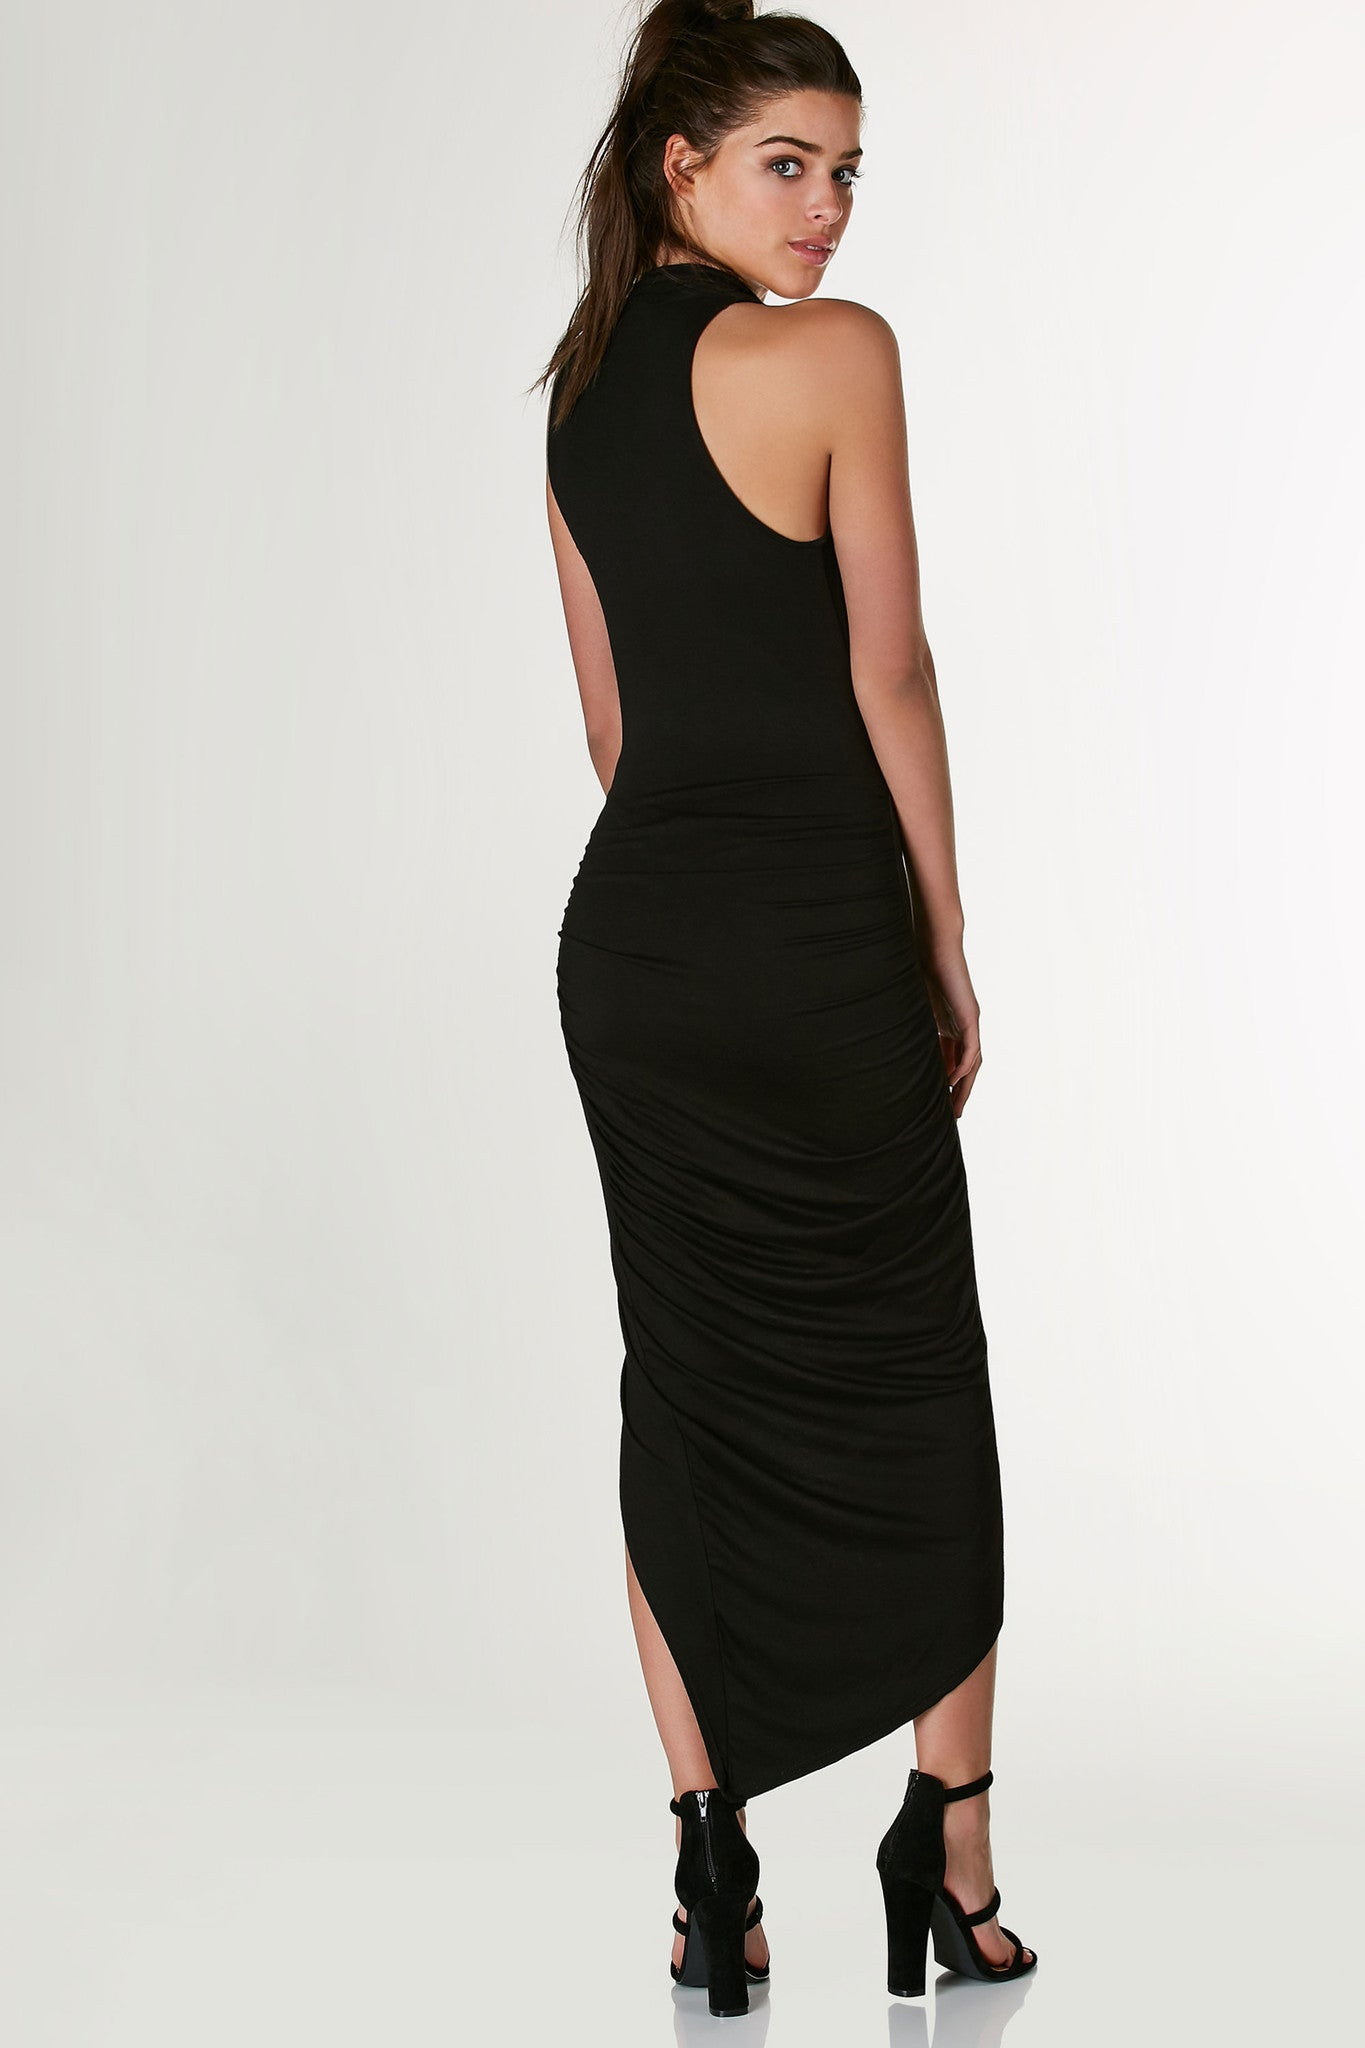 Sexy sleeveless dress with draped open neckline. Ruched on one side with hi-low enveloped, asymmetrical hem.